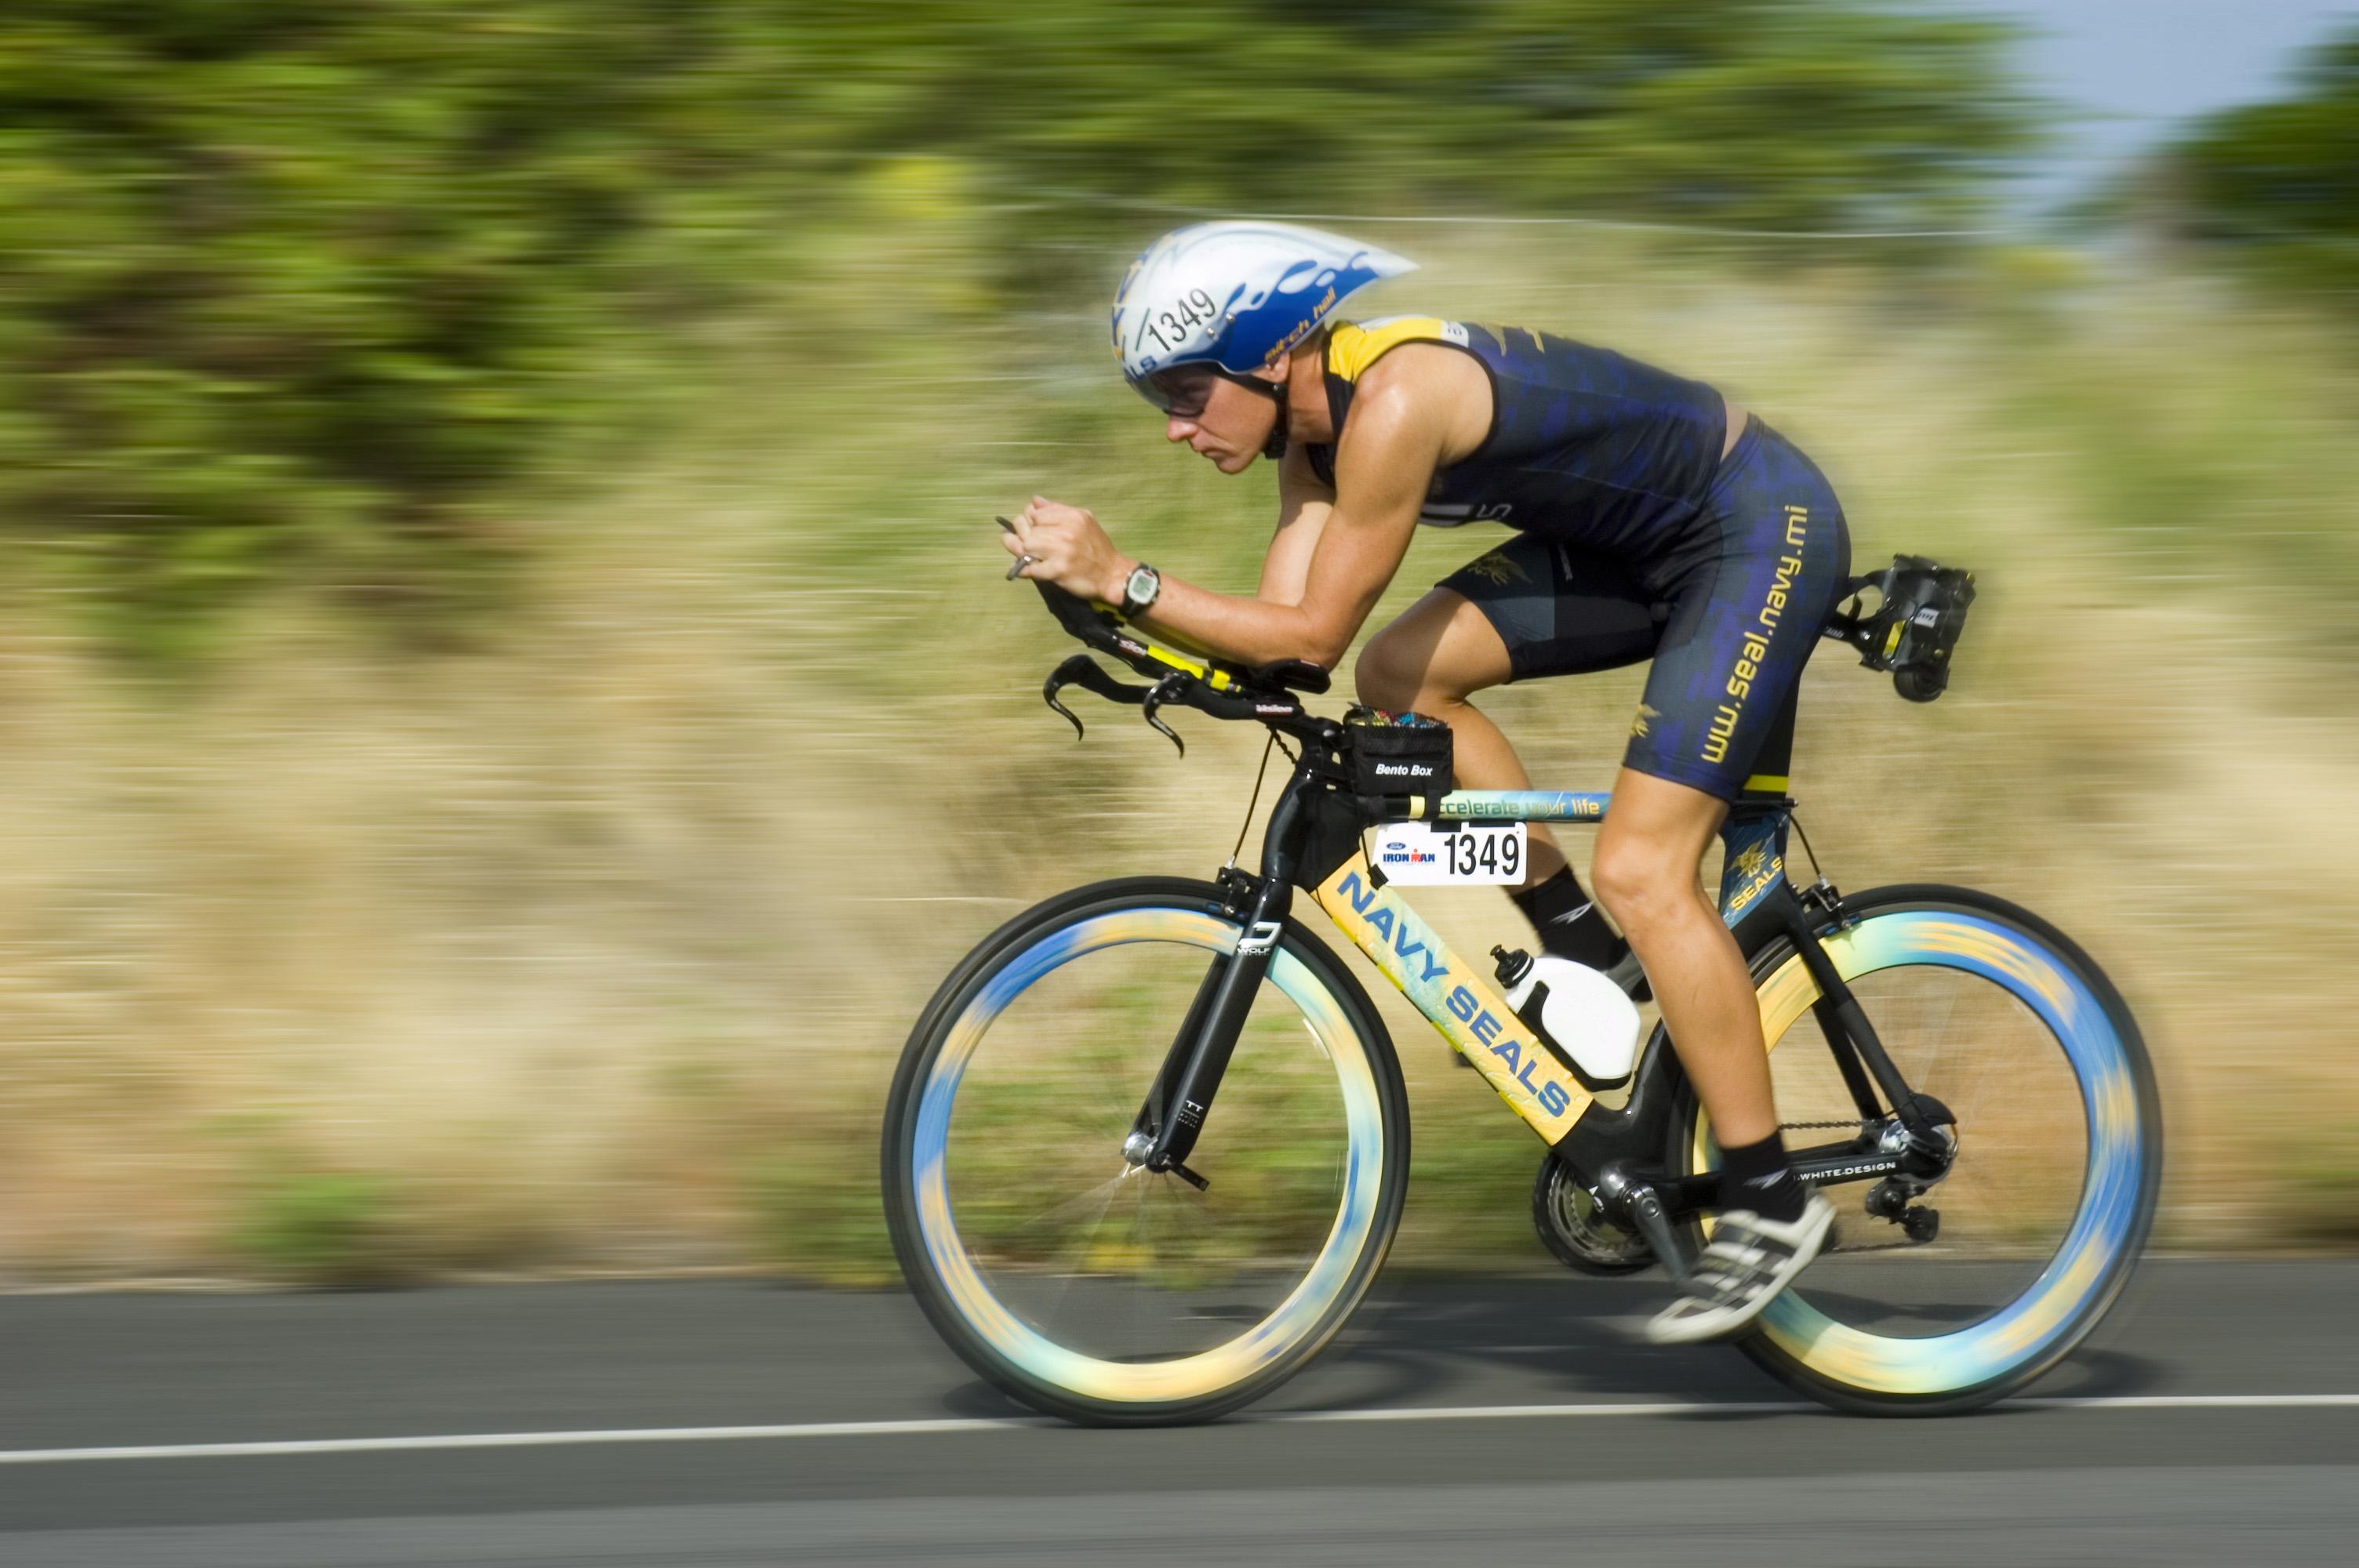 U.S. Navy SEAL Mitch Hall, assigned to Naval Special Warfare Center, tests his racing bike in Kona, Hawaii one day prior to the Ironman Triathlon, Oct. 20, 2006. (DoD photo)